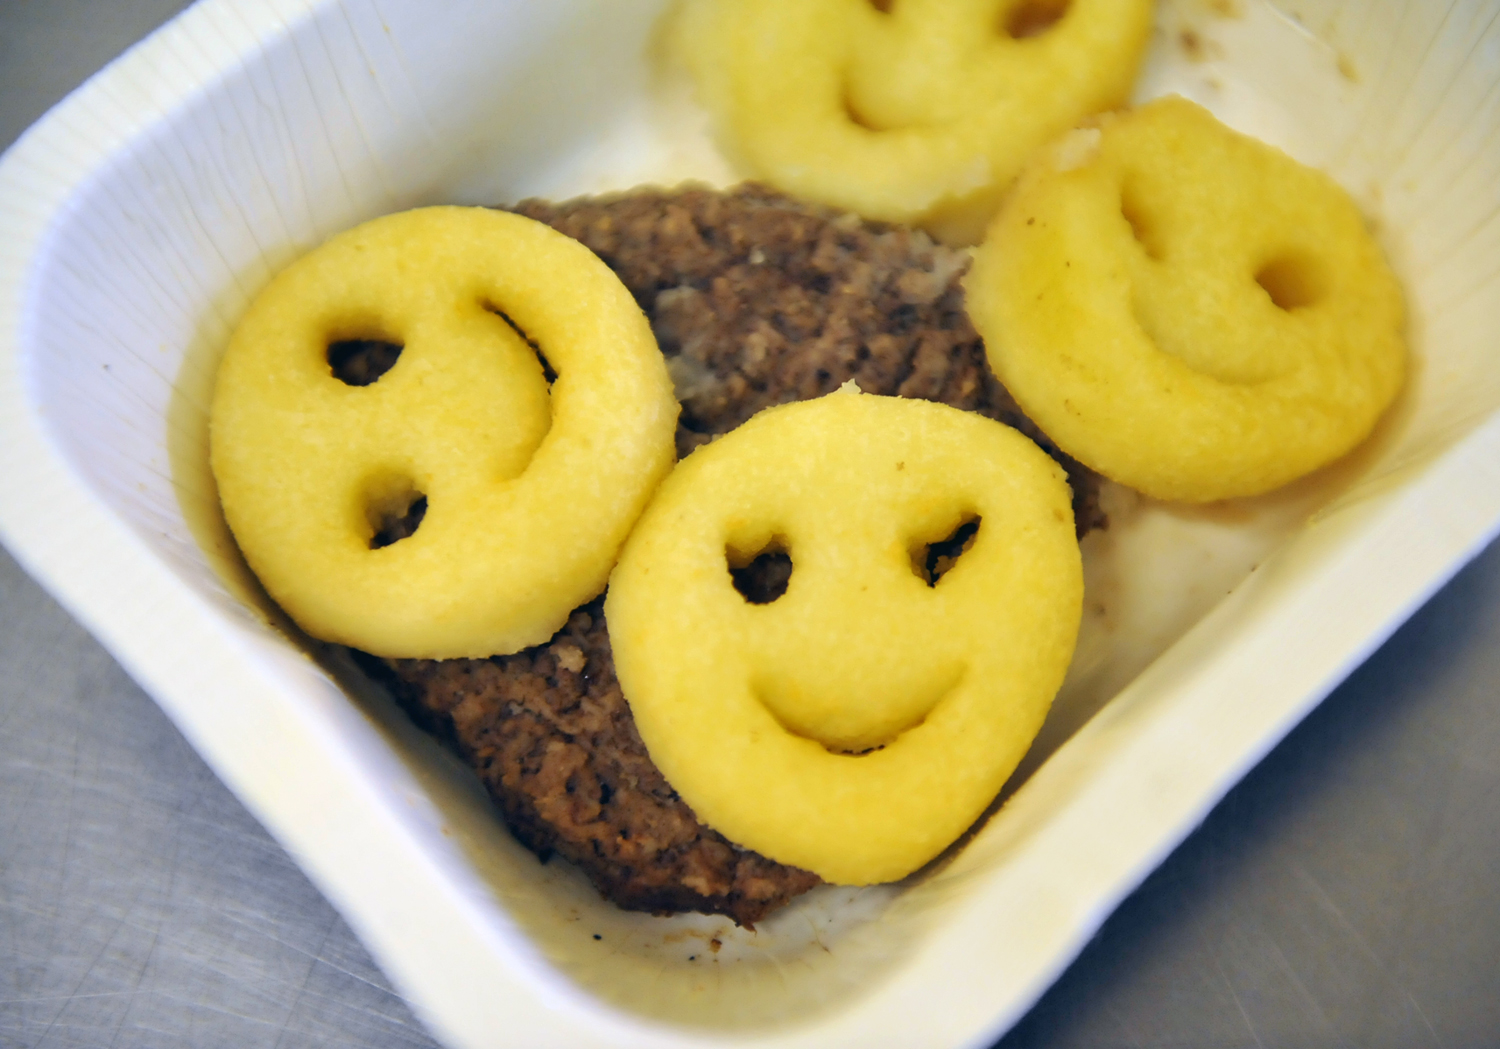 California school lunches missing the mark for nutrition